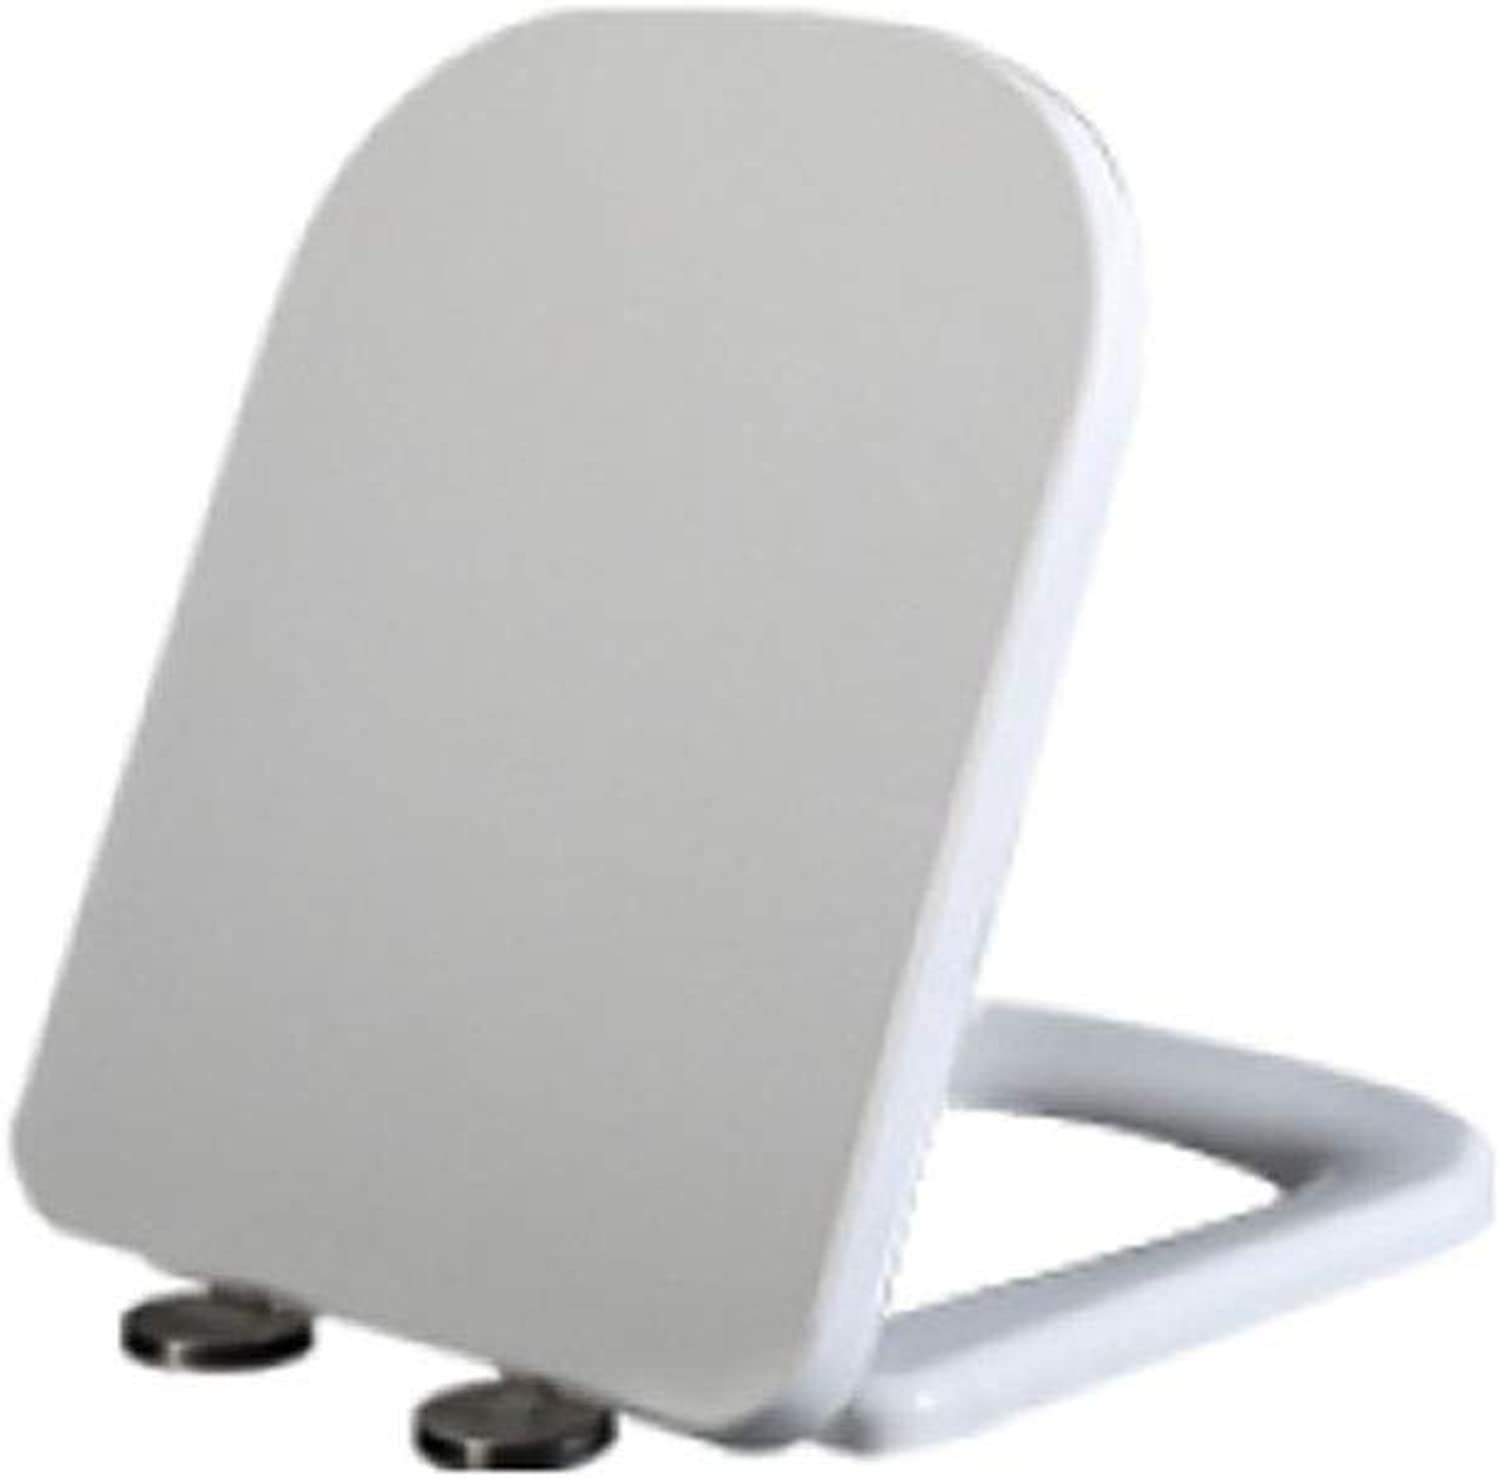 SUNYAN Universal V U O Type Square Toilet Seat Urea-formaldehyde Resin Board Slow Down Mute Thickening Cover White 12 Styles,G